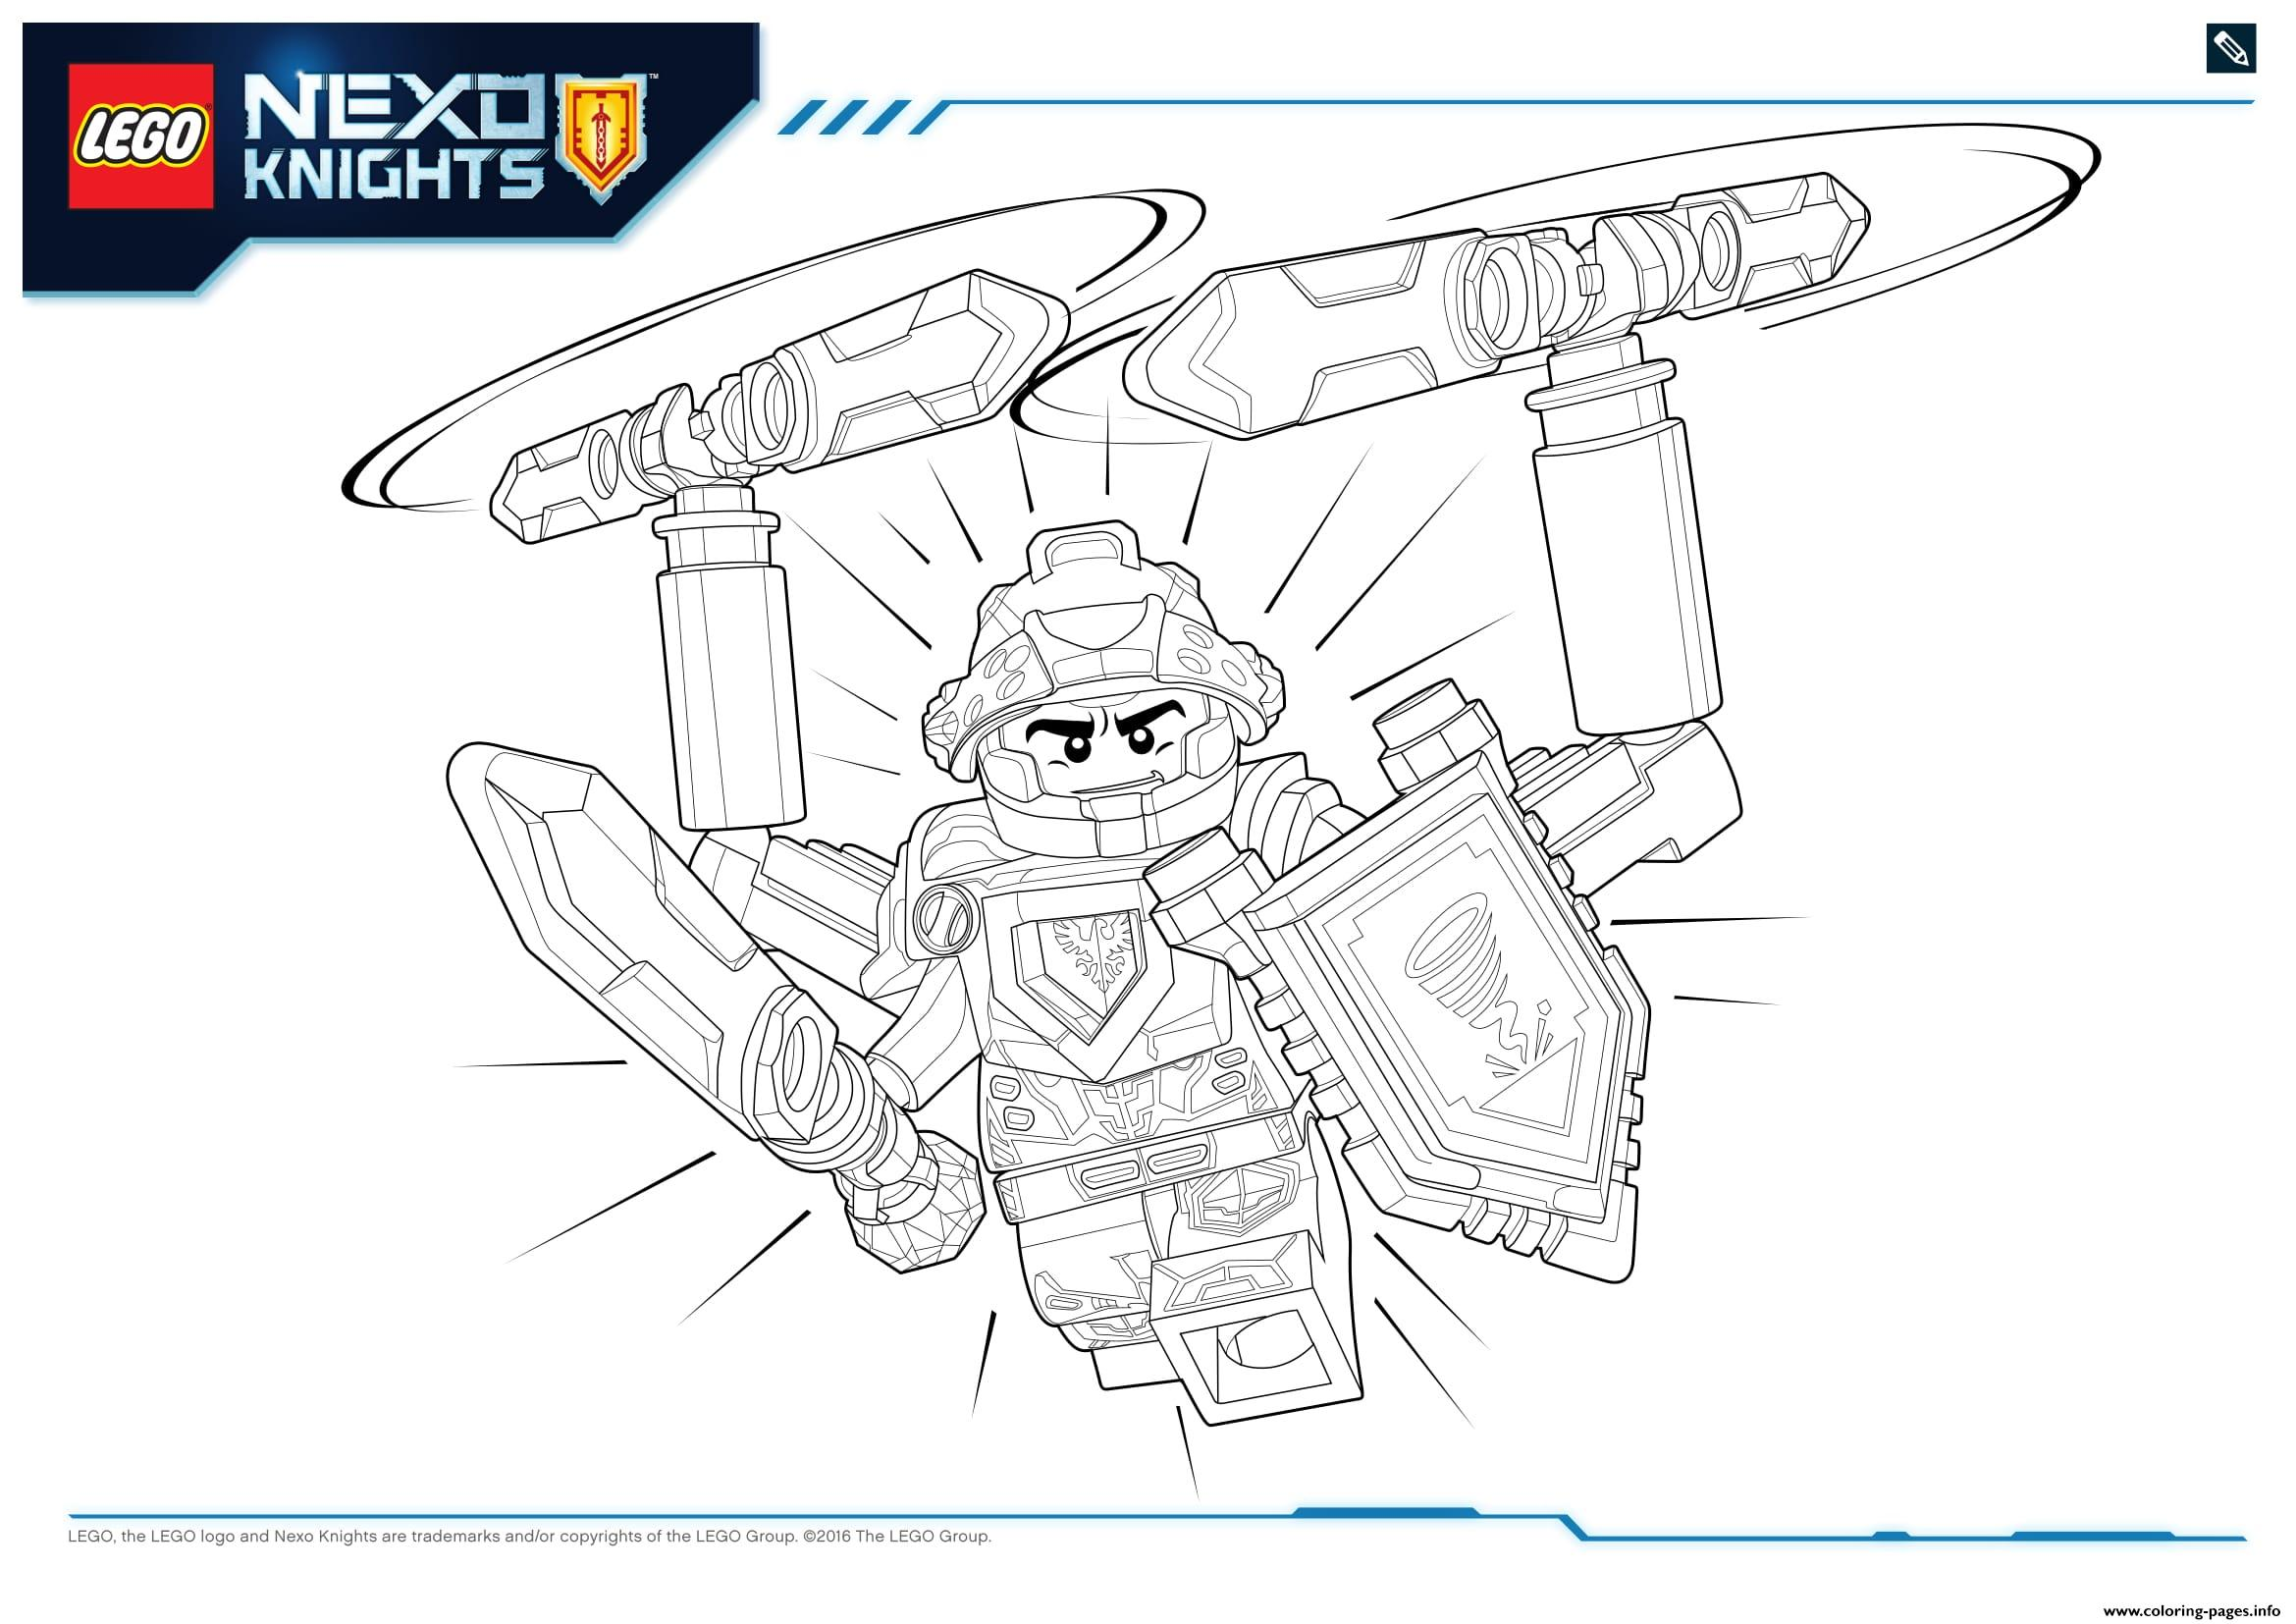 Lego Nexo Knights Ultimate Knights 2 Coloring Pages Printable